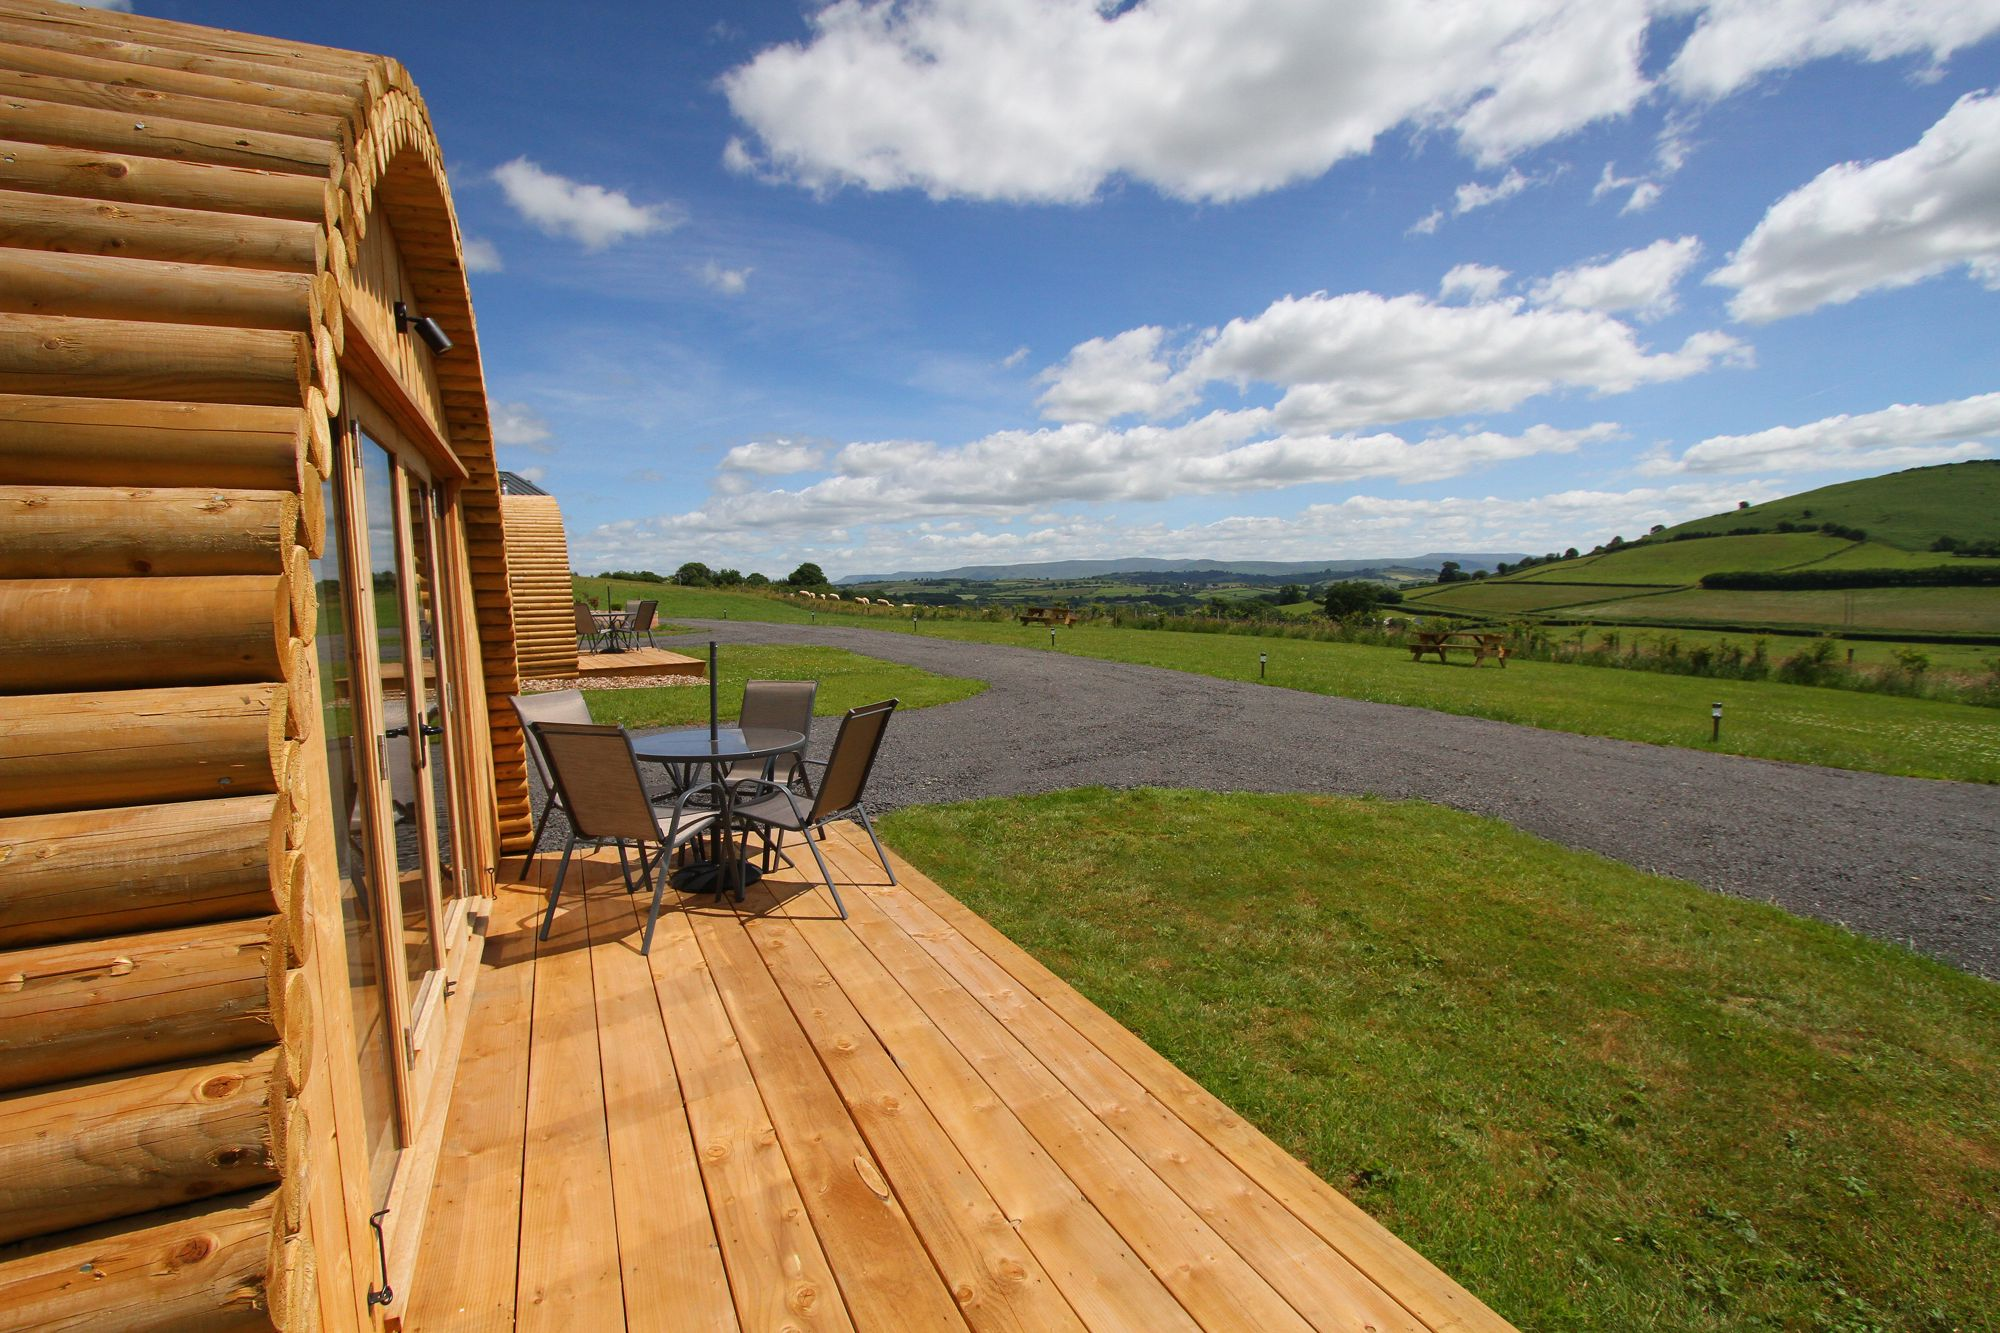 Glamping park overlooking the Brecon Beacons National Park